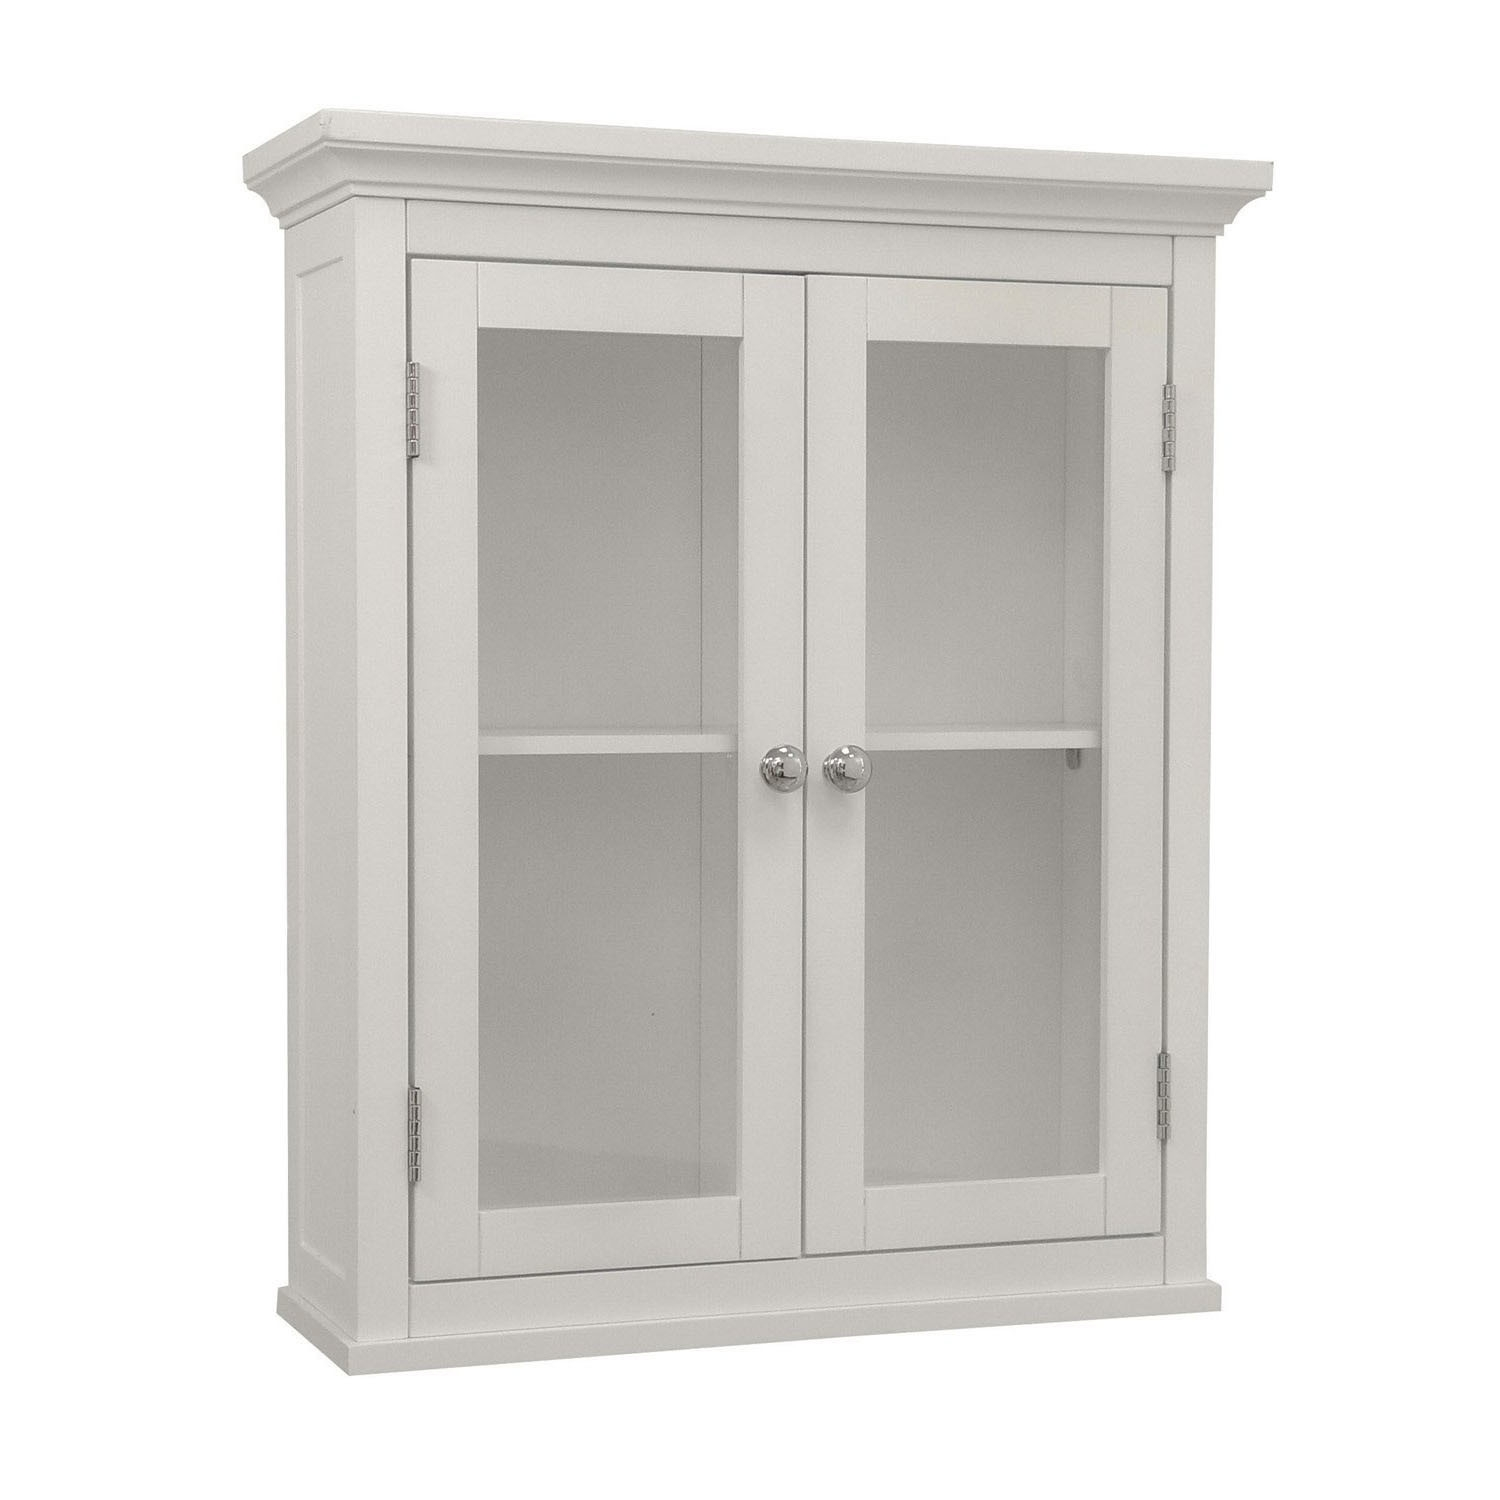 Louvered Door Bathroom Wall Cabinet